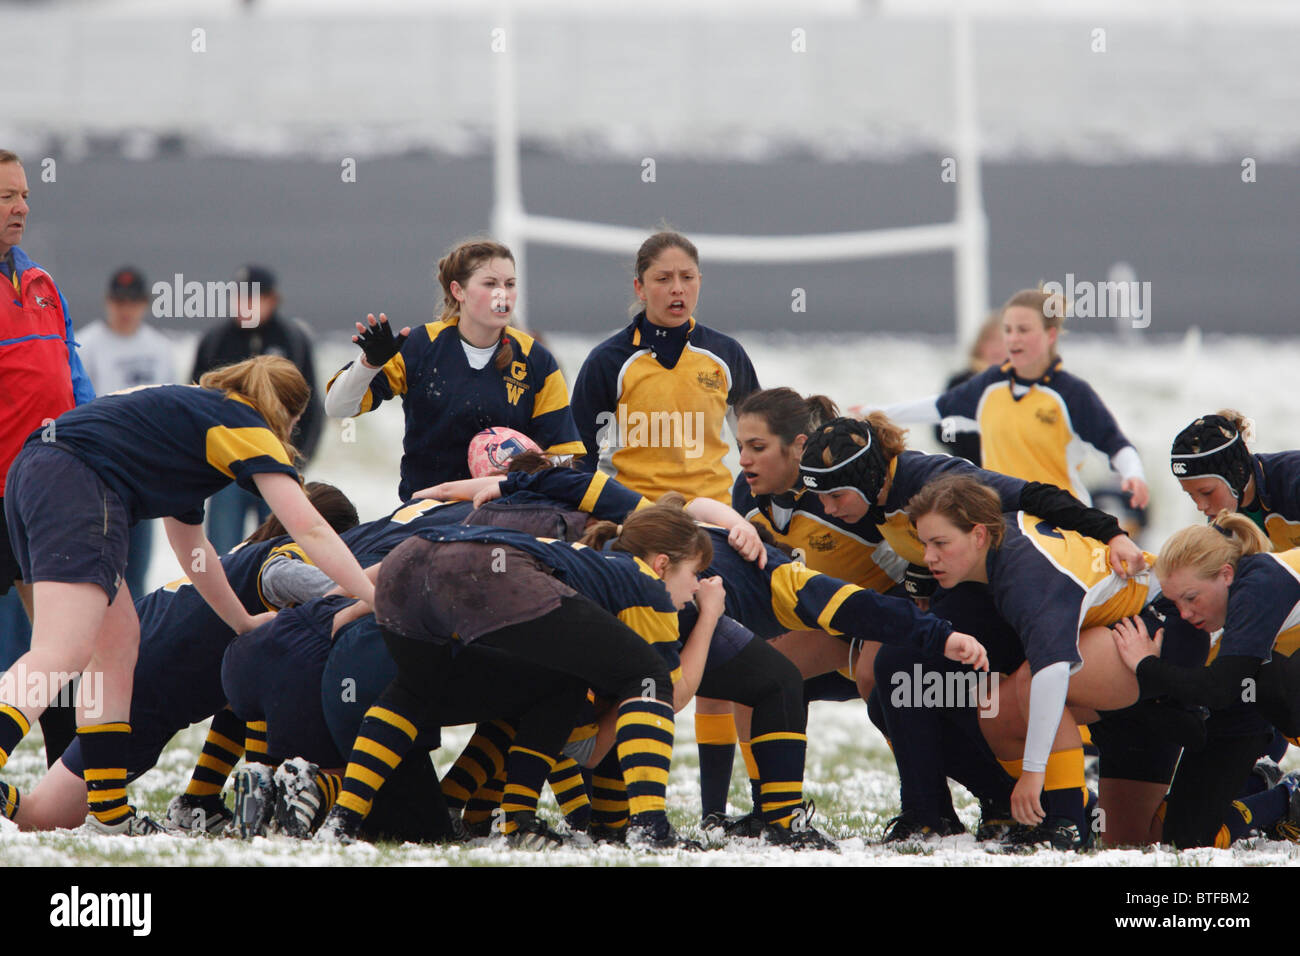 Naval Academy and George Washington University players set for a scrum during a women's rugby match. - Stock Image